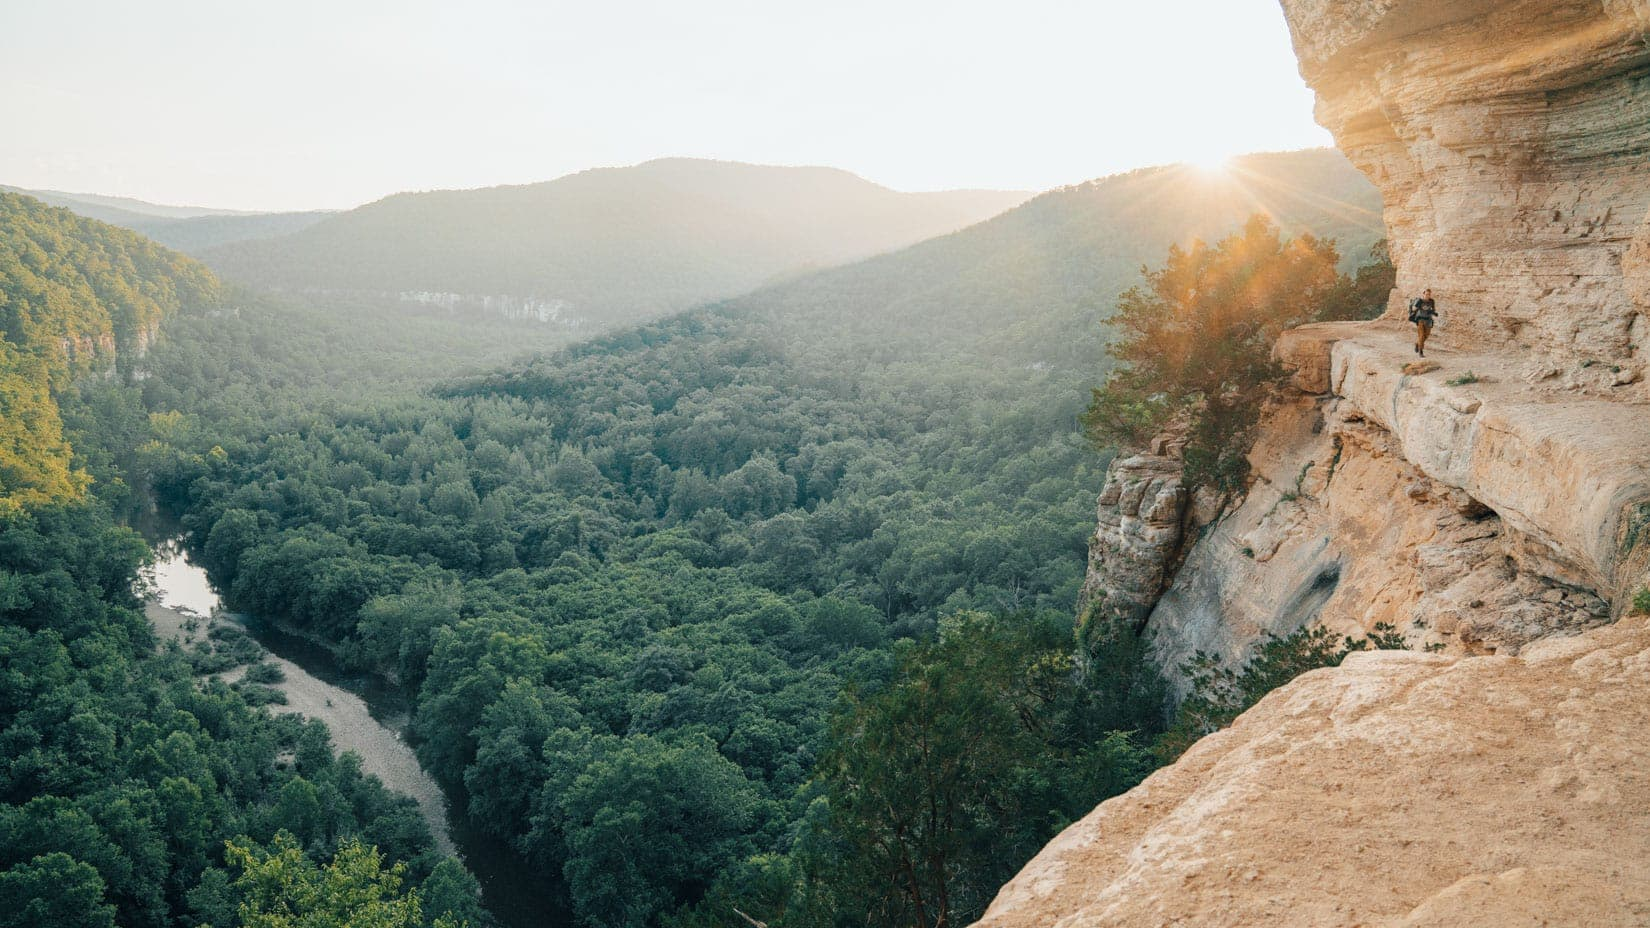 Hiker on a cliff at sunset